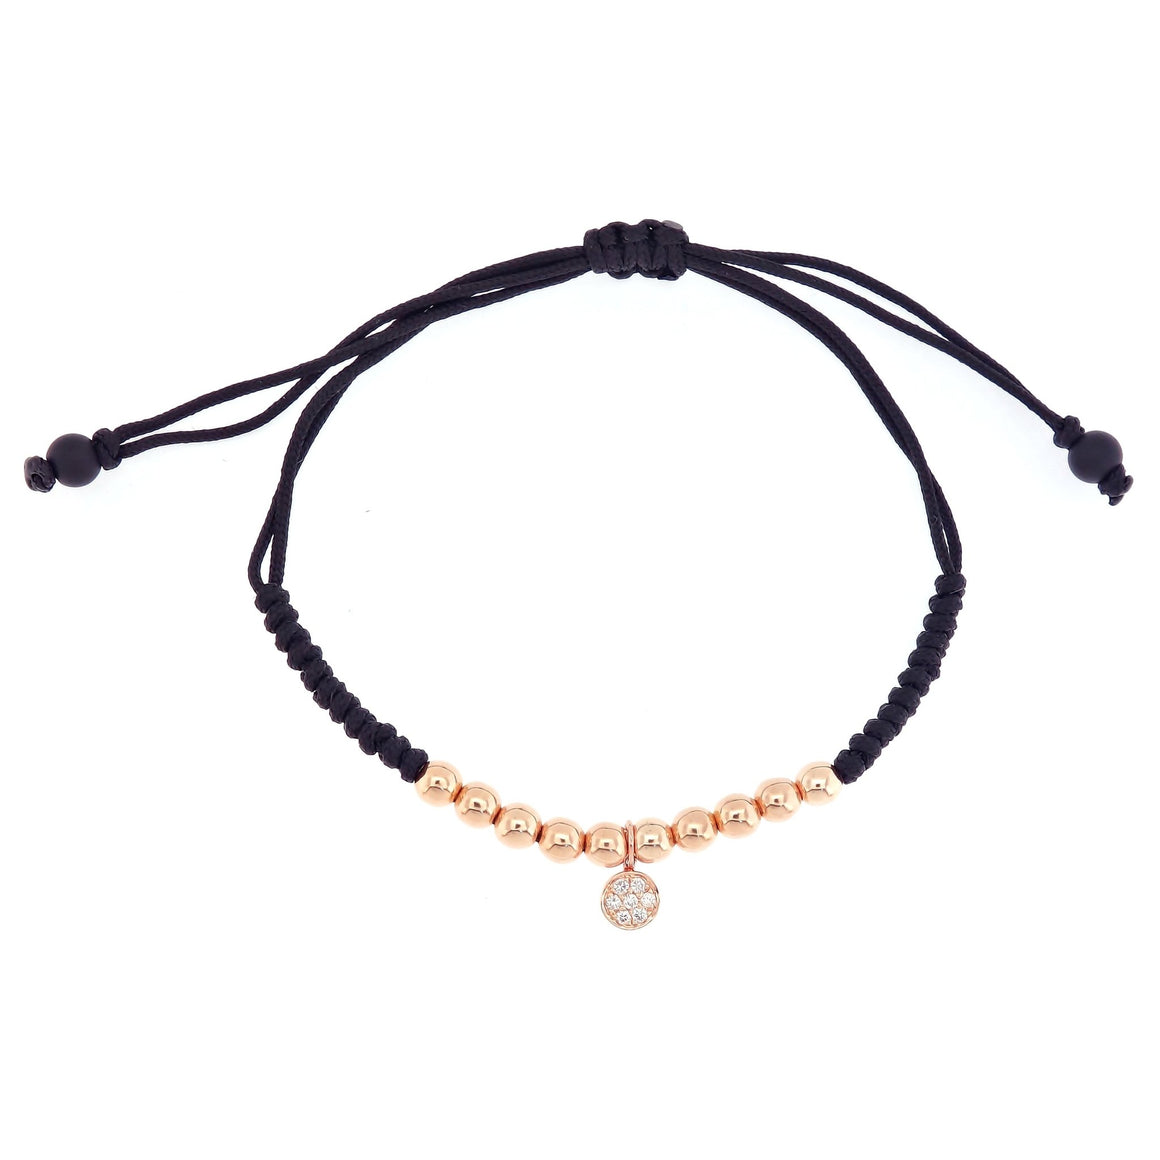 Gold Beads Bracelet with Round Pave Diamond in 18K Rose Gold